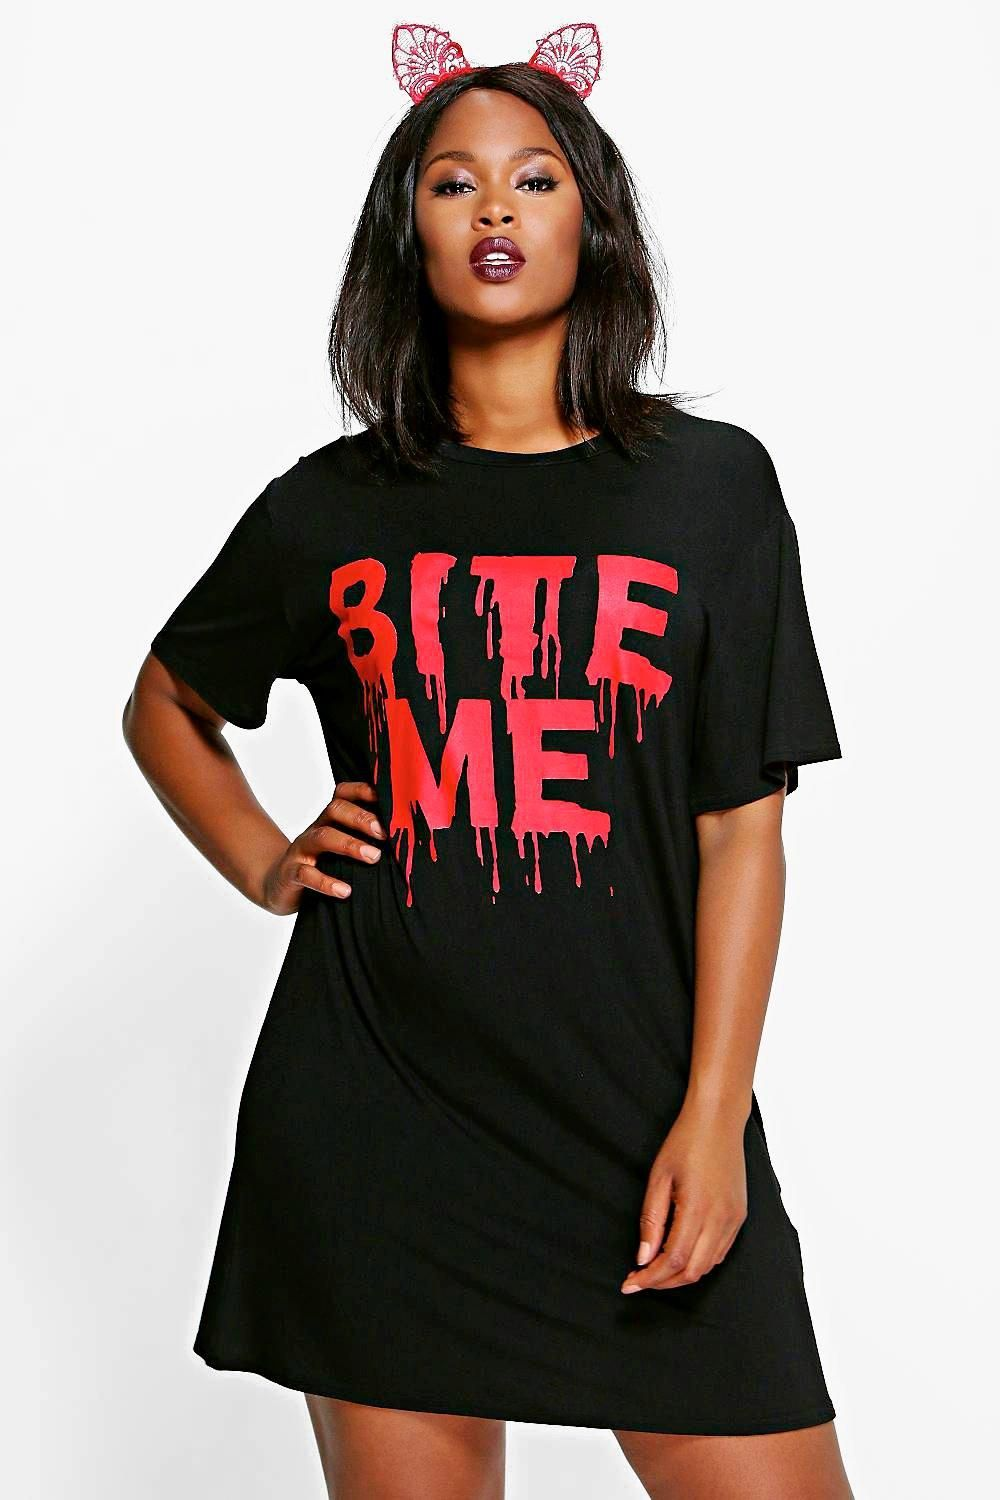 I feel that this is sleep wear for me T shirt dress